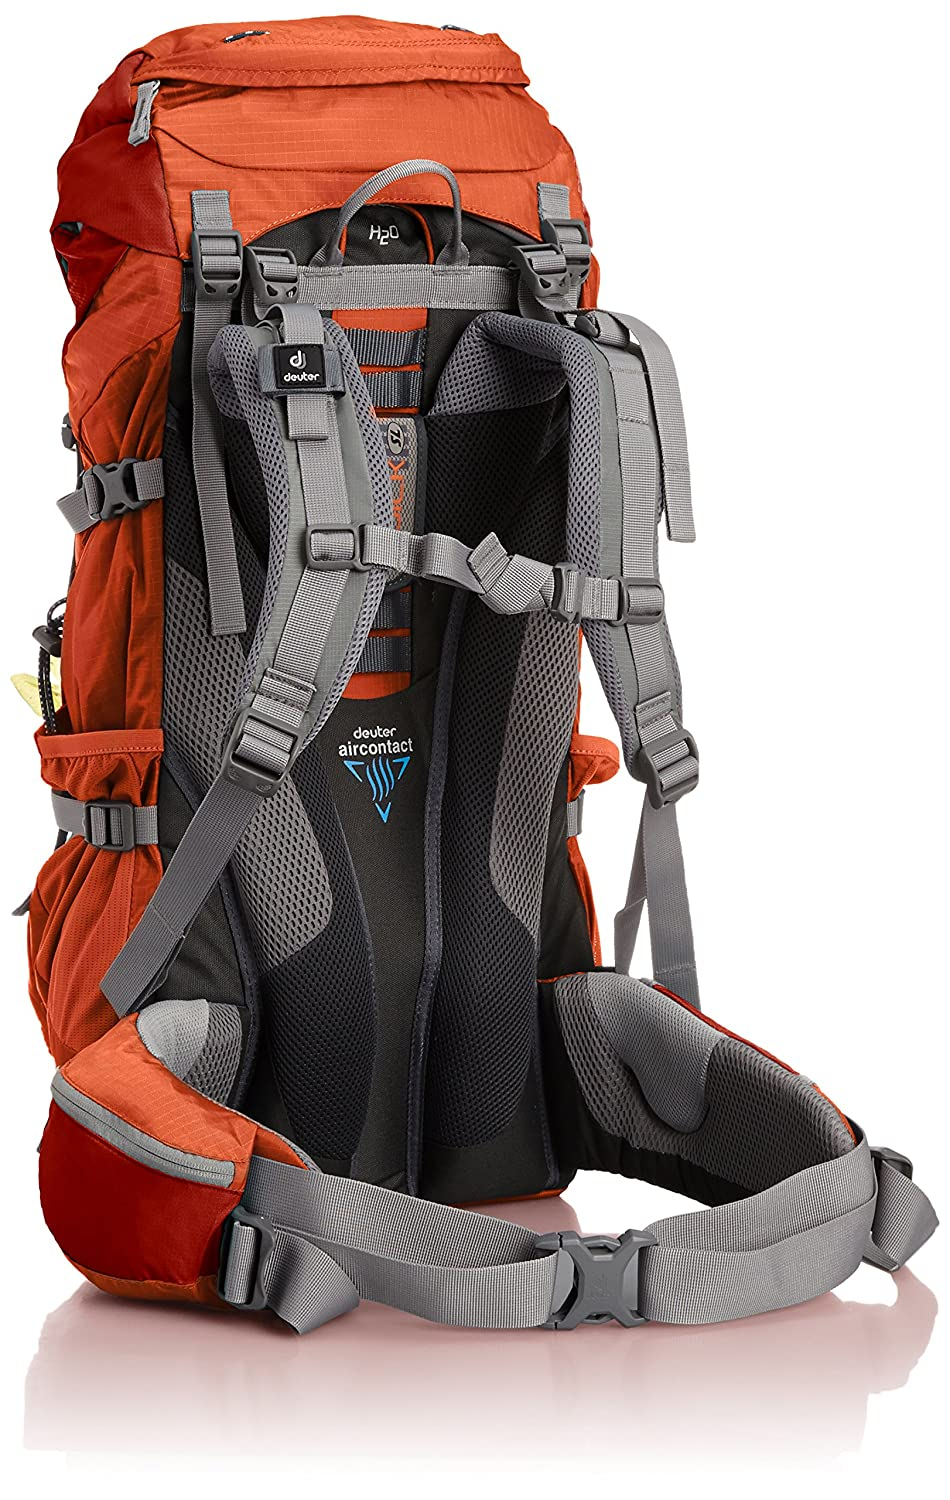 Deuter ACT Lite 35 10 SL Pack – Discontinued